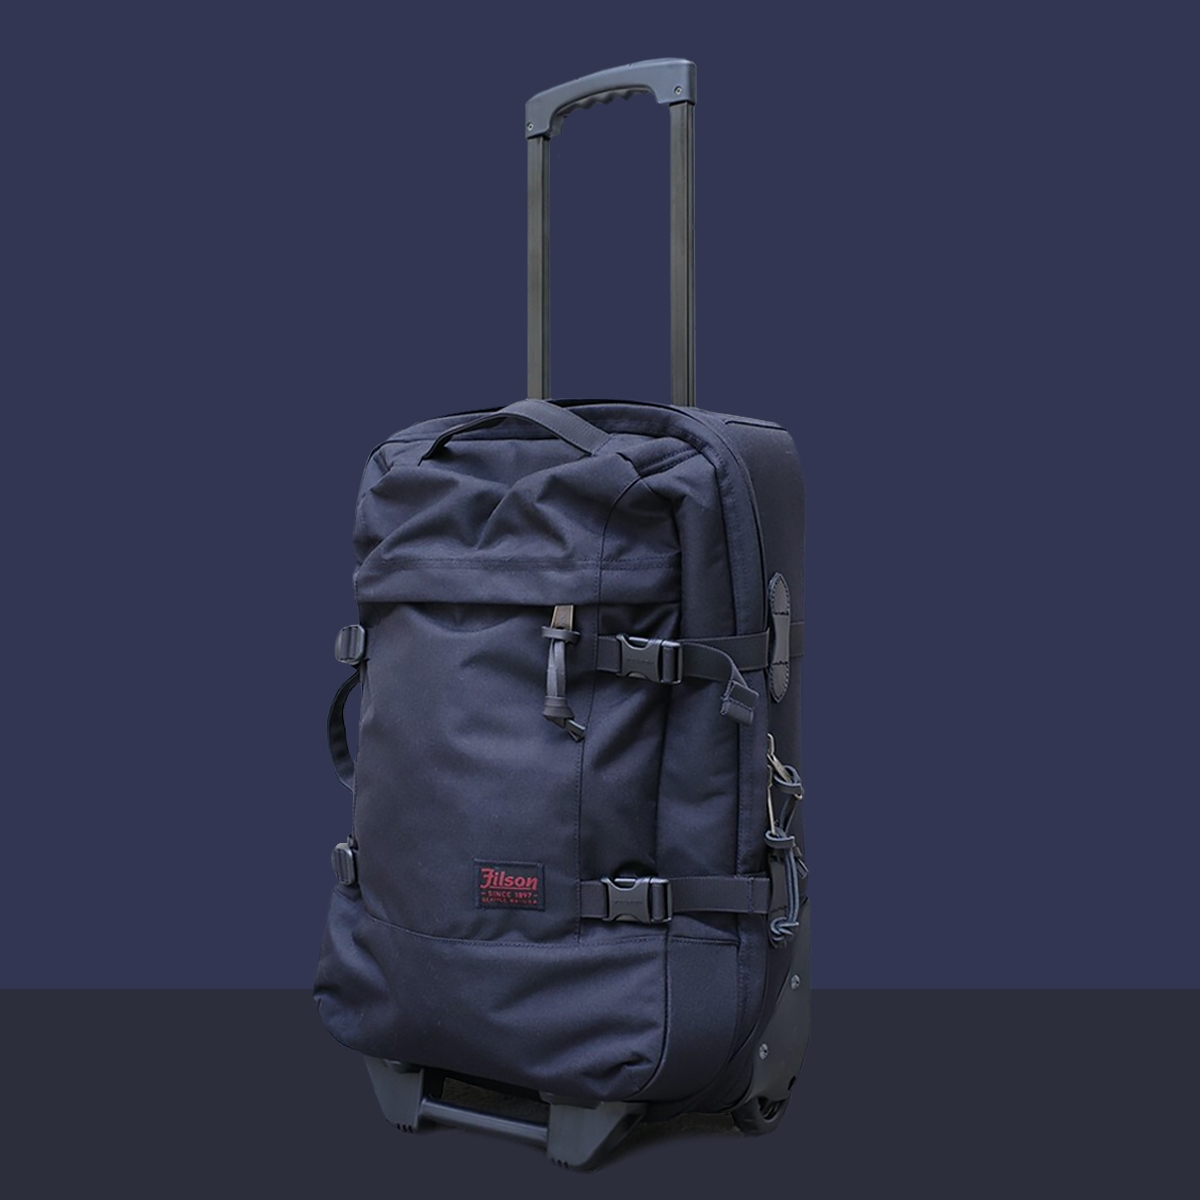 Filson Dryden Dryden 2-Wheel Rolling Carry-On Bag 20047728-Dark Navy, Koffer hergestellt aus reißfestem ballistischem Nylon für jahrelanges, zuverlässiges Reisen